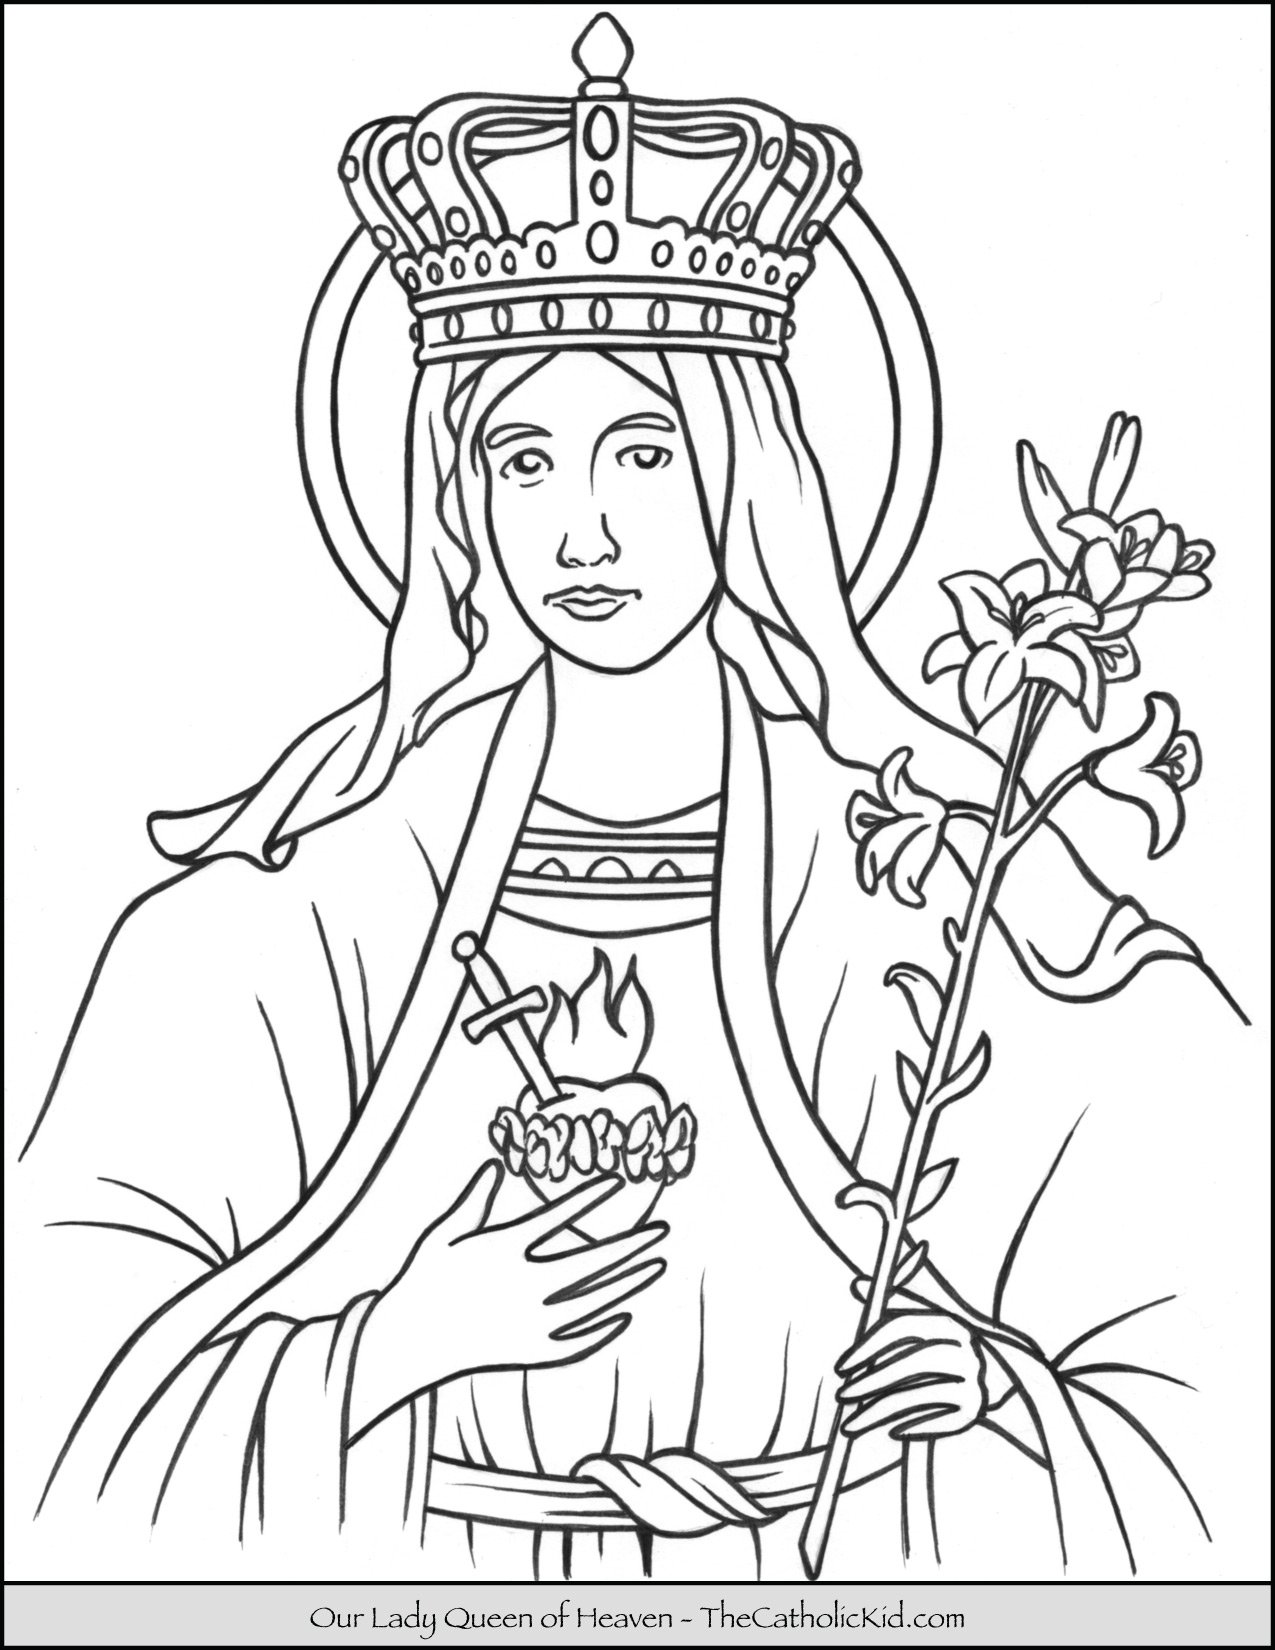 Our Lady Queen of Heaven Coloring Page